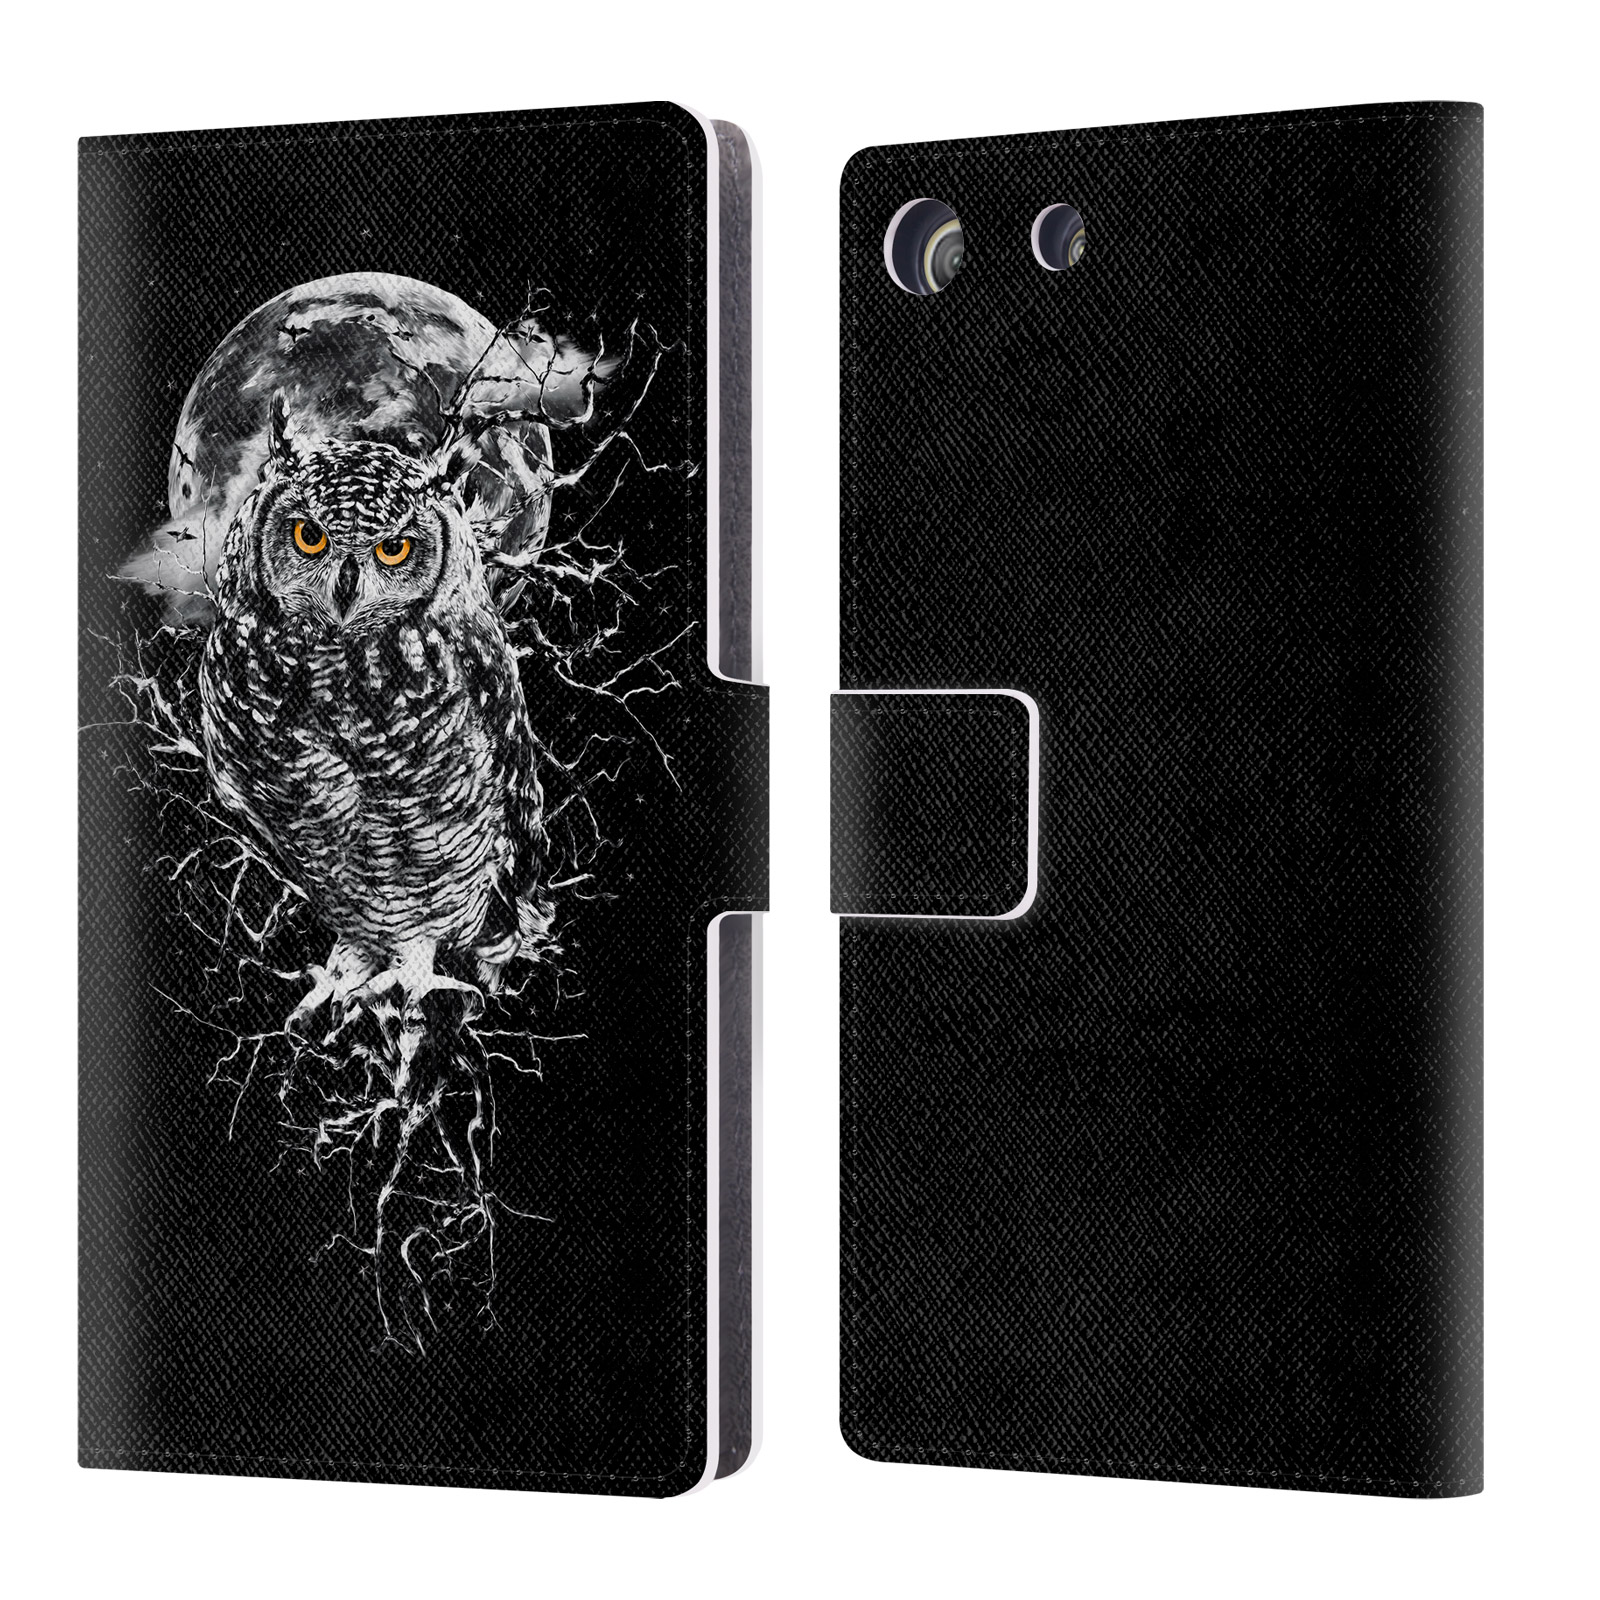 OFFICIAL RIZA PEKER ANIMALS 2 LEATHER BOOK WALLET CASE COVER FOR SONY PHONES 2